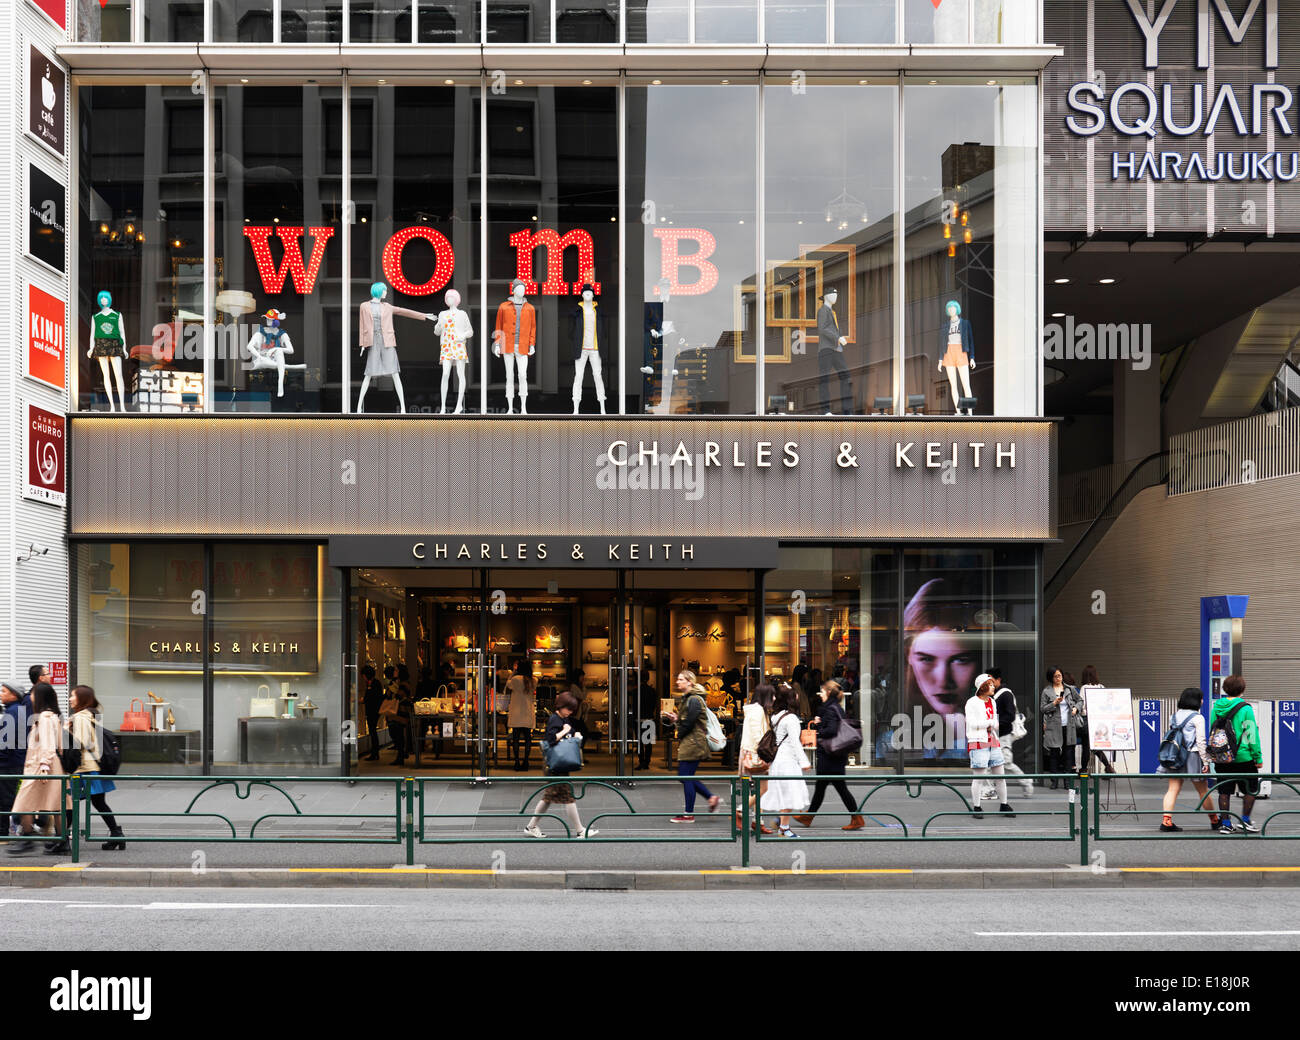 Charles and Keith and WOMB fashion clothing stores in YM Square, Harajuku, Tokyo, Japan. - Stock Image